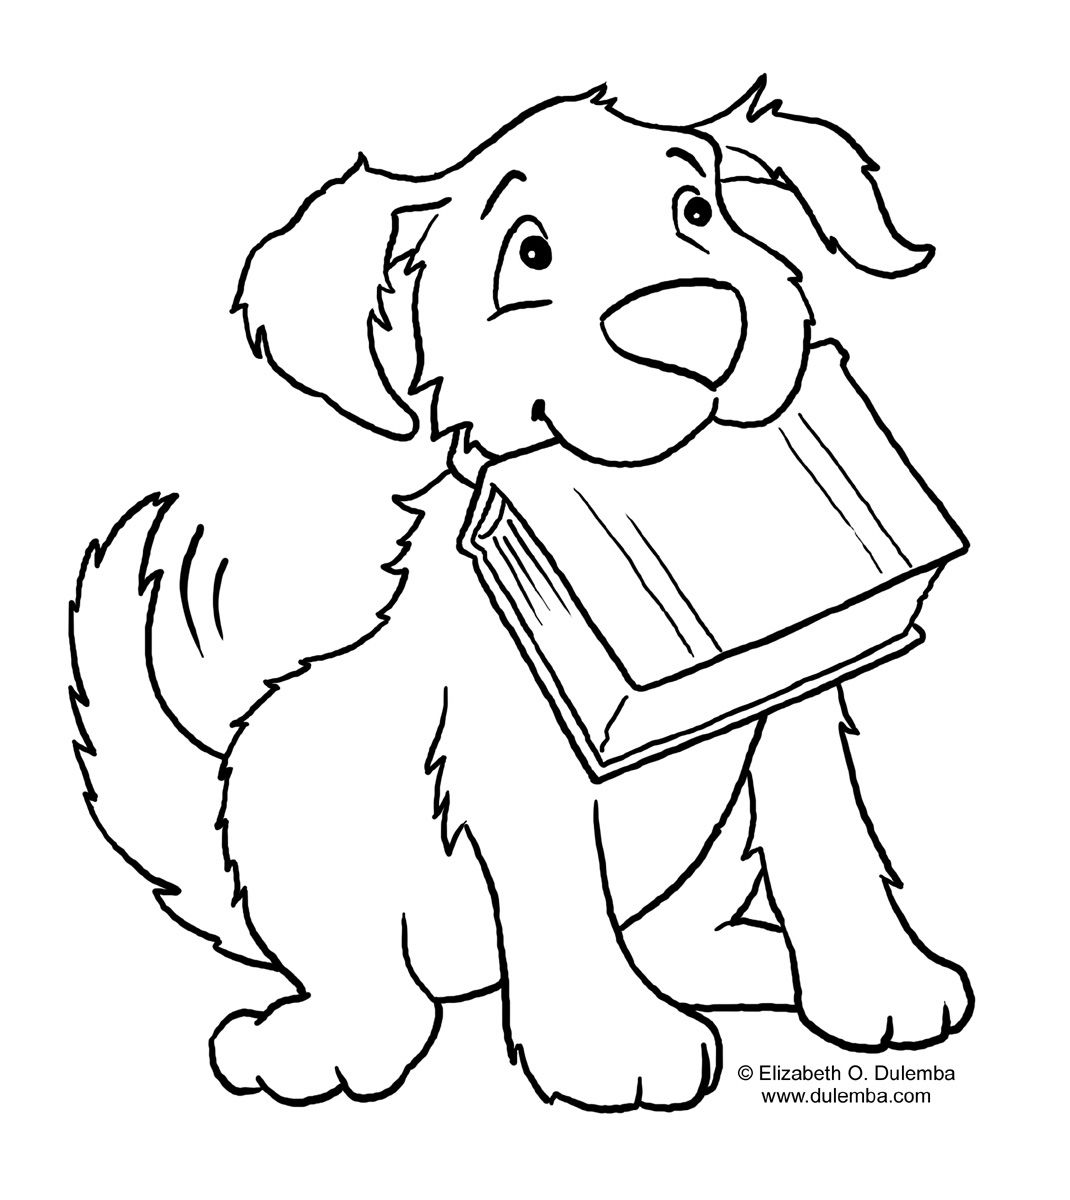 Dog And Book Animal Coloring Pages Dog Coloring Page Easy Coloring Pages